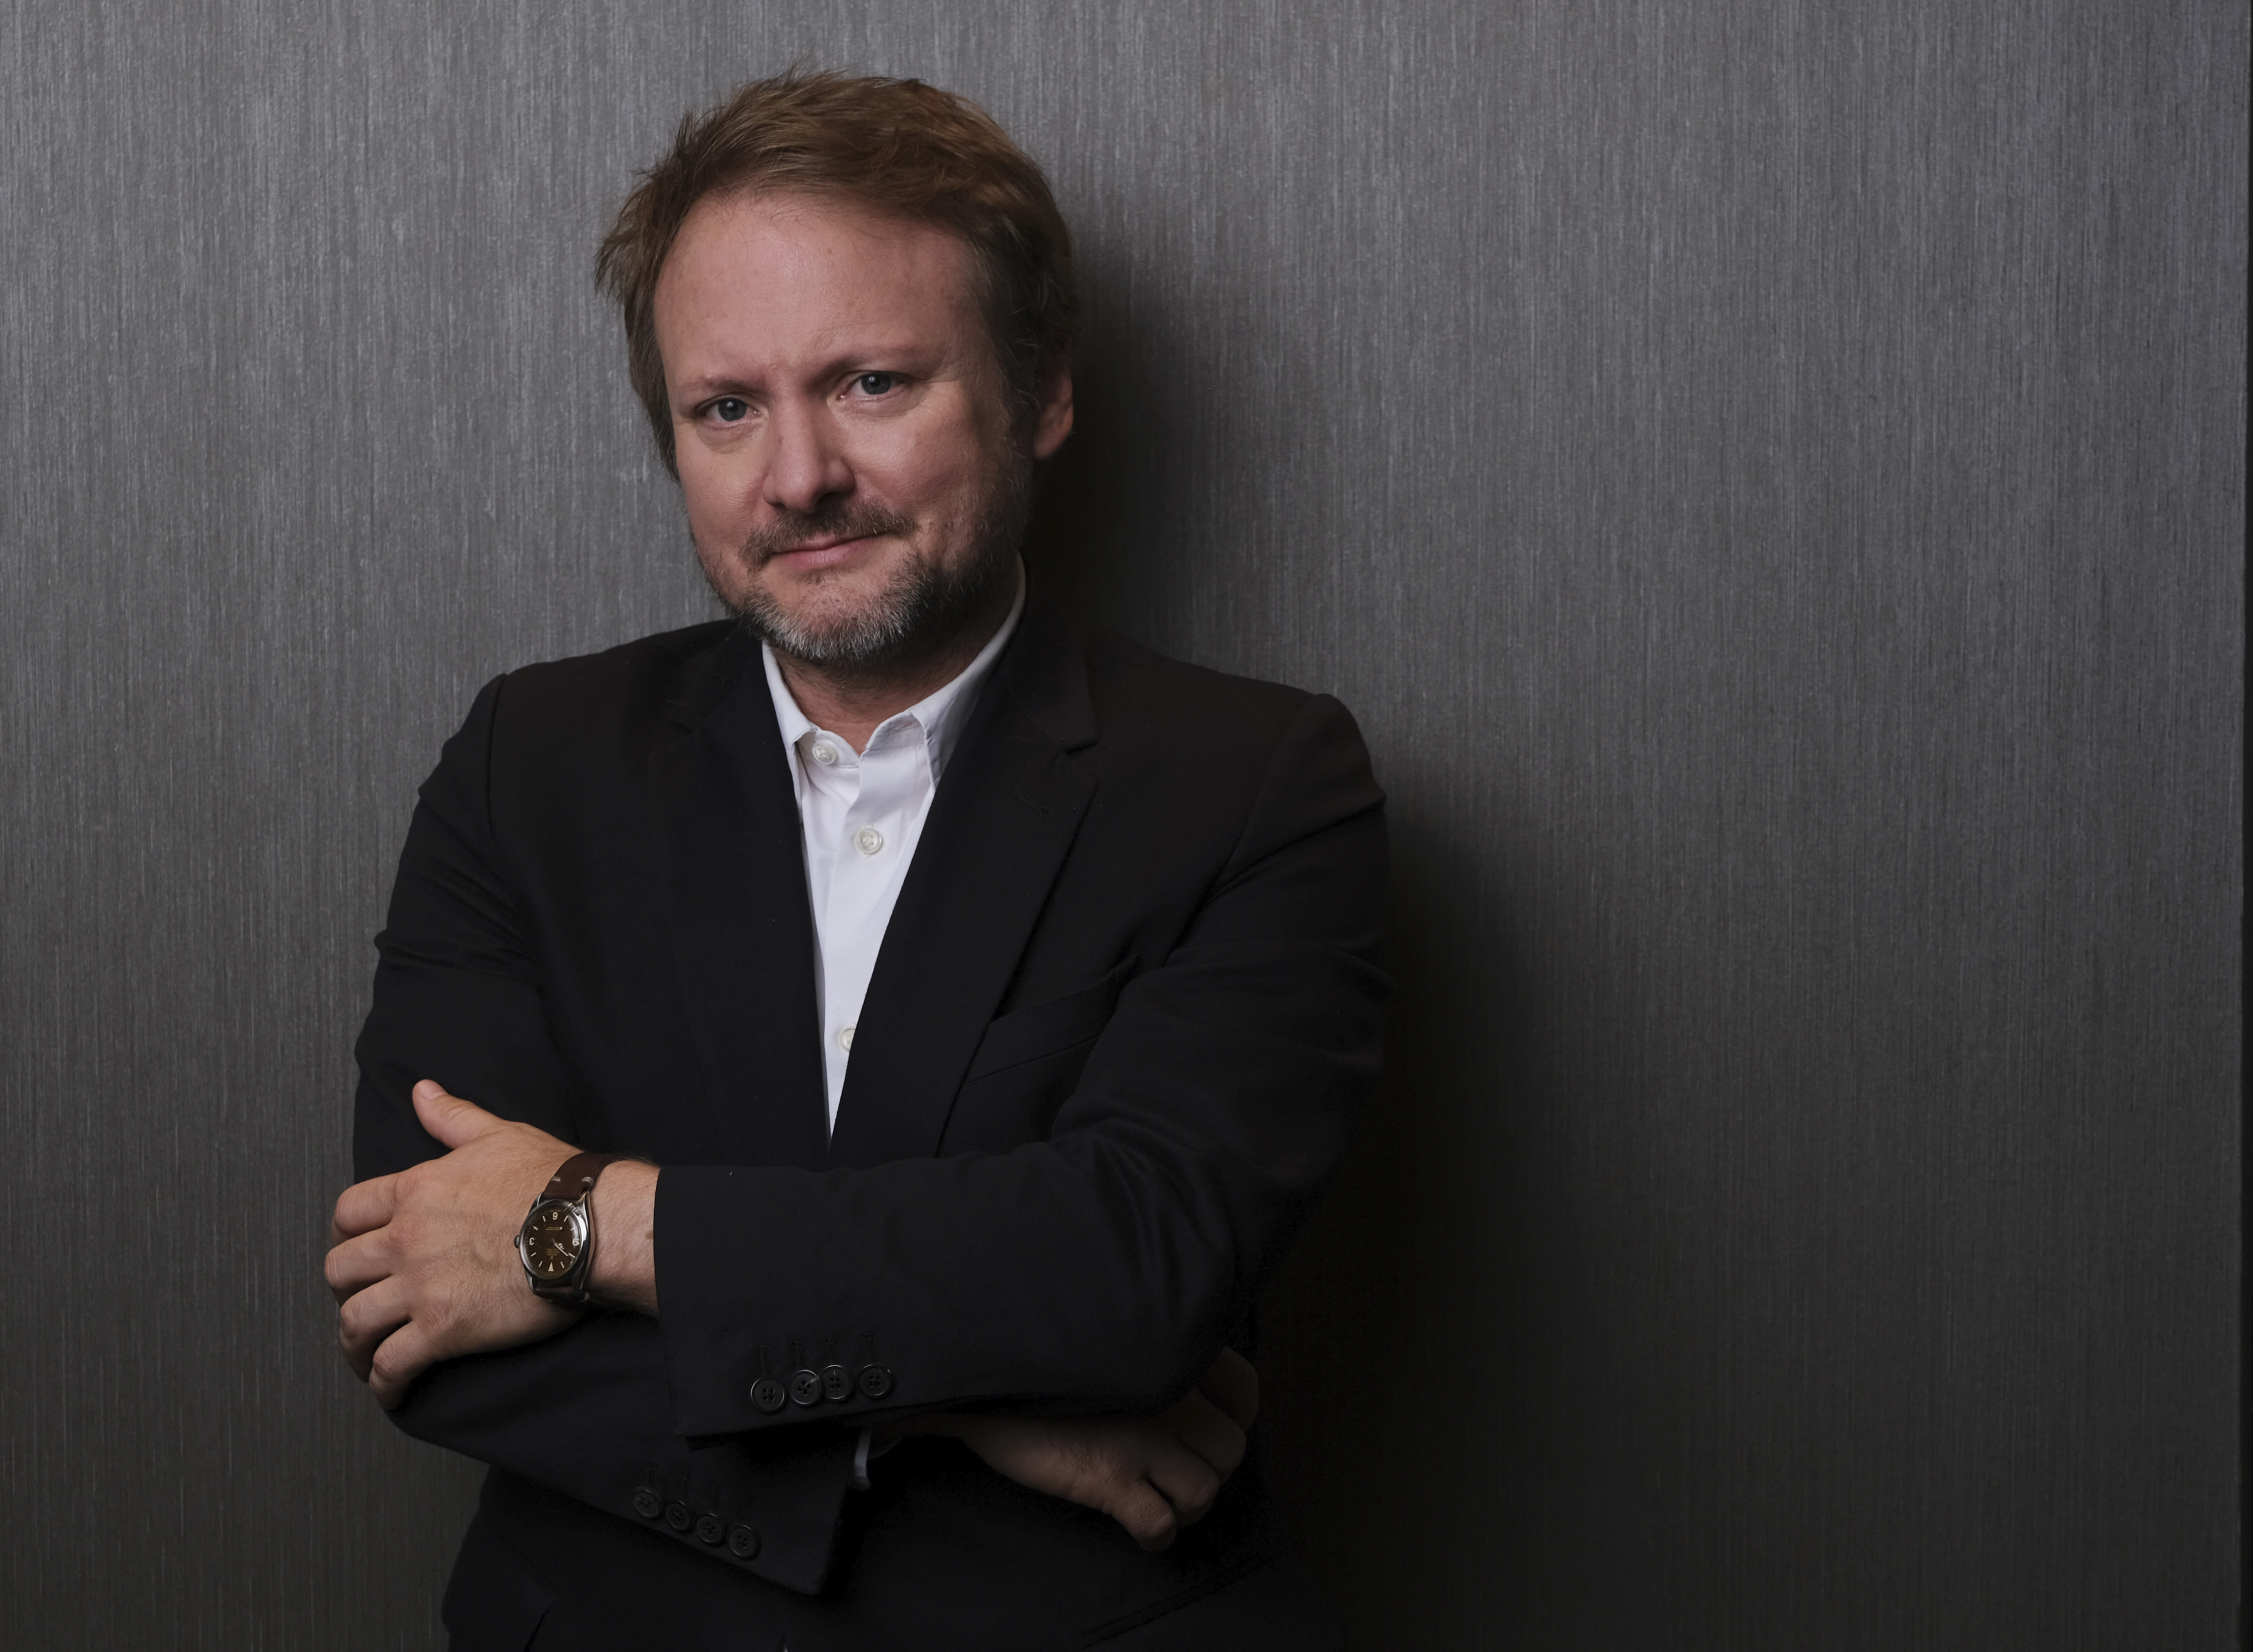 'The Last Jedi' director Rian Johnson says it's a 'mistake' not to challenge fans